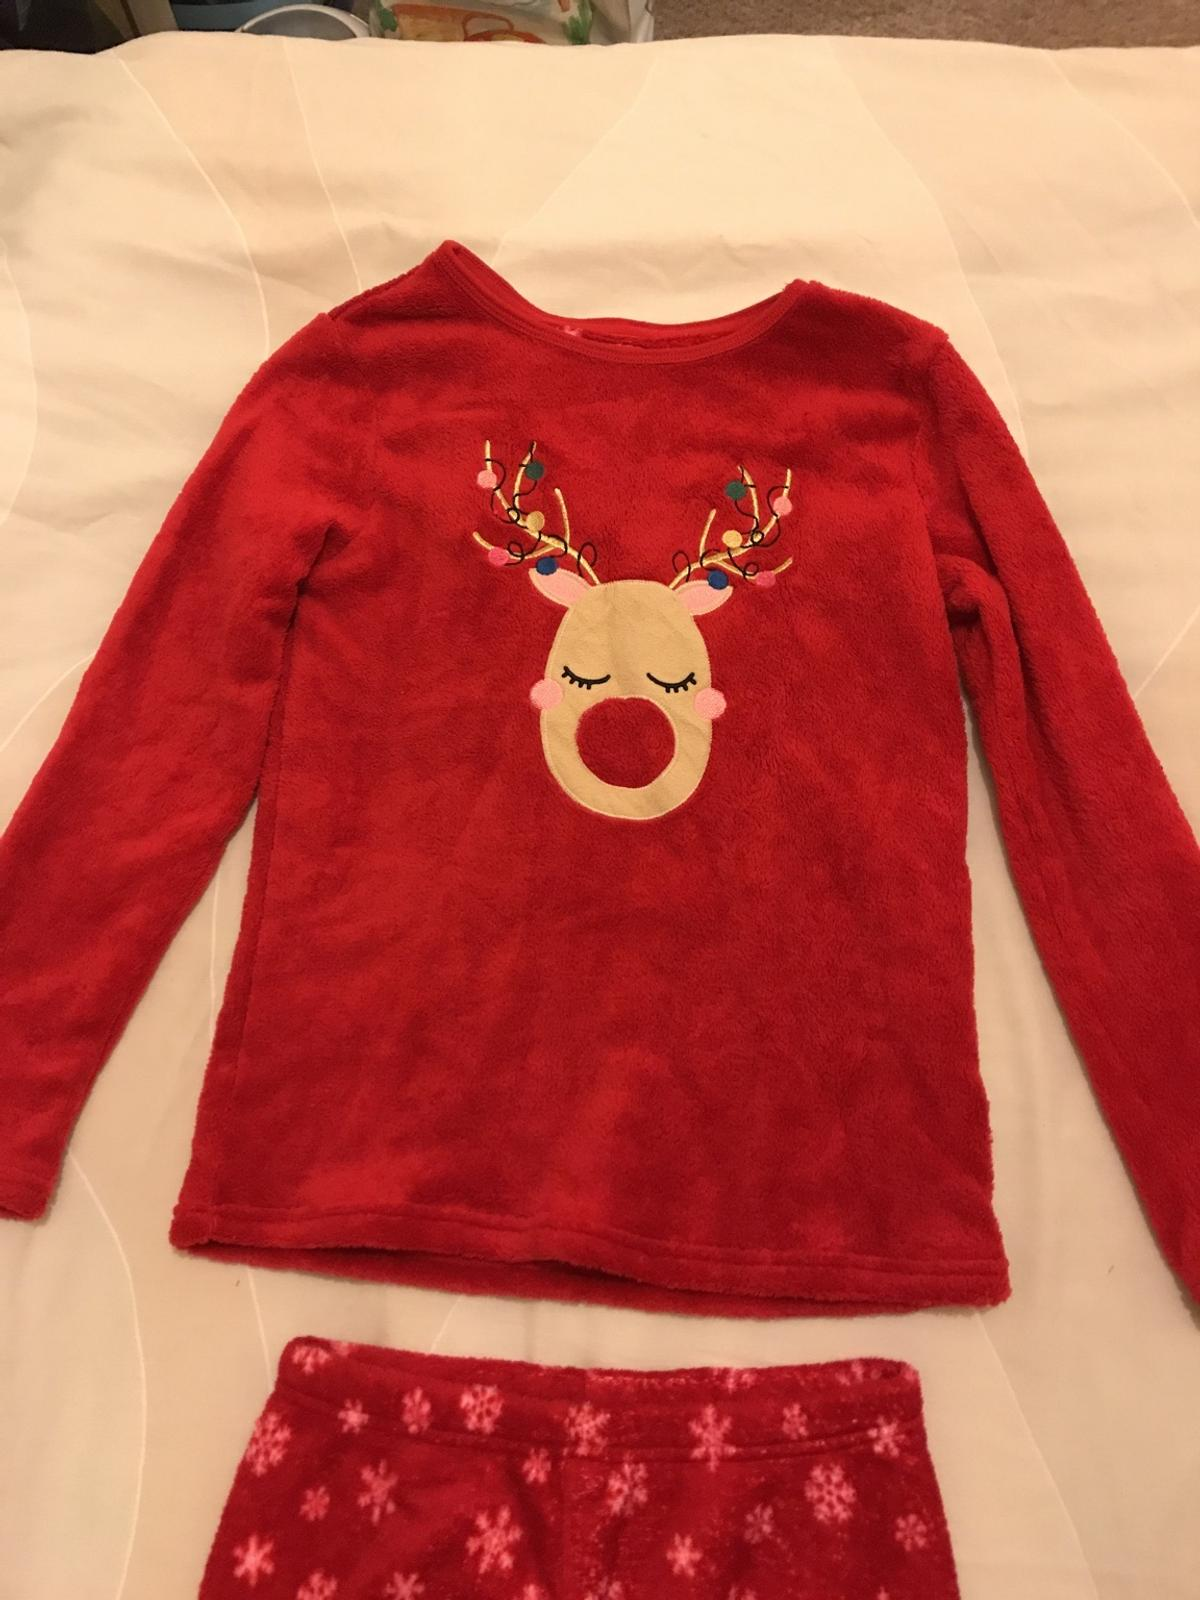 Red fleece warm pjs from Primark Age 11-12 years